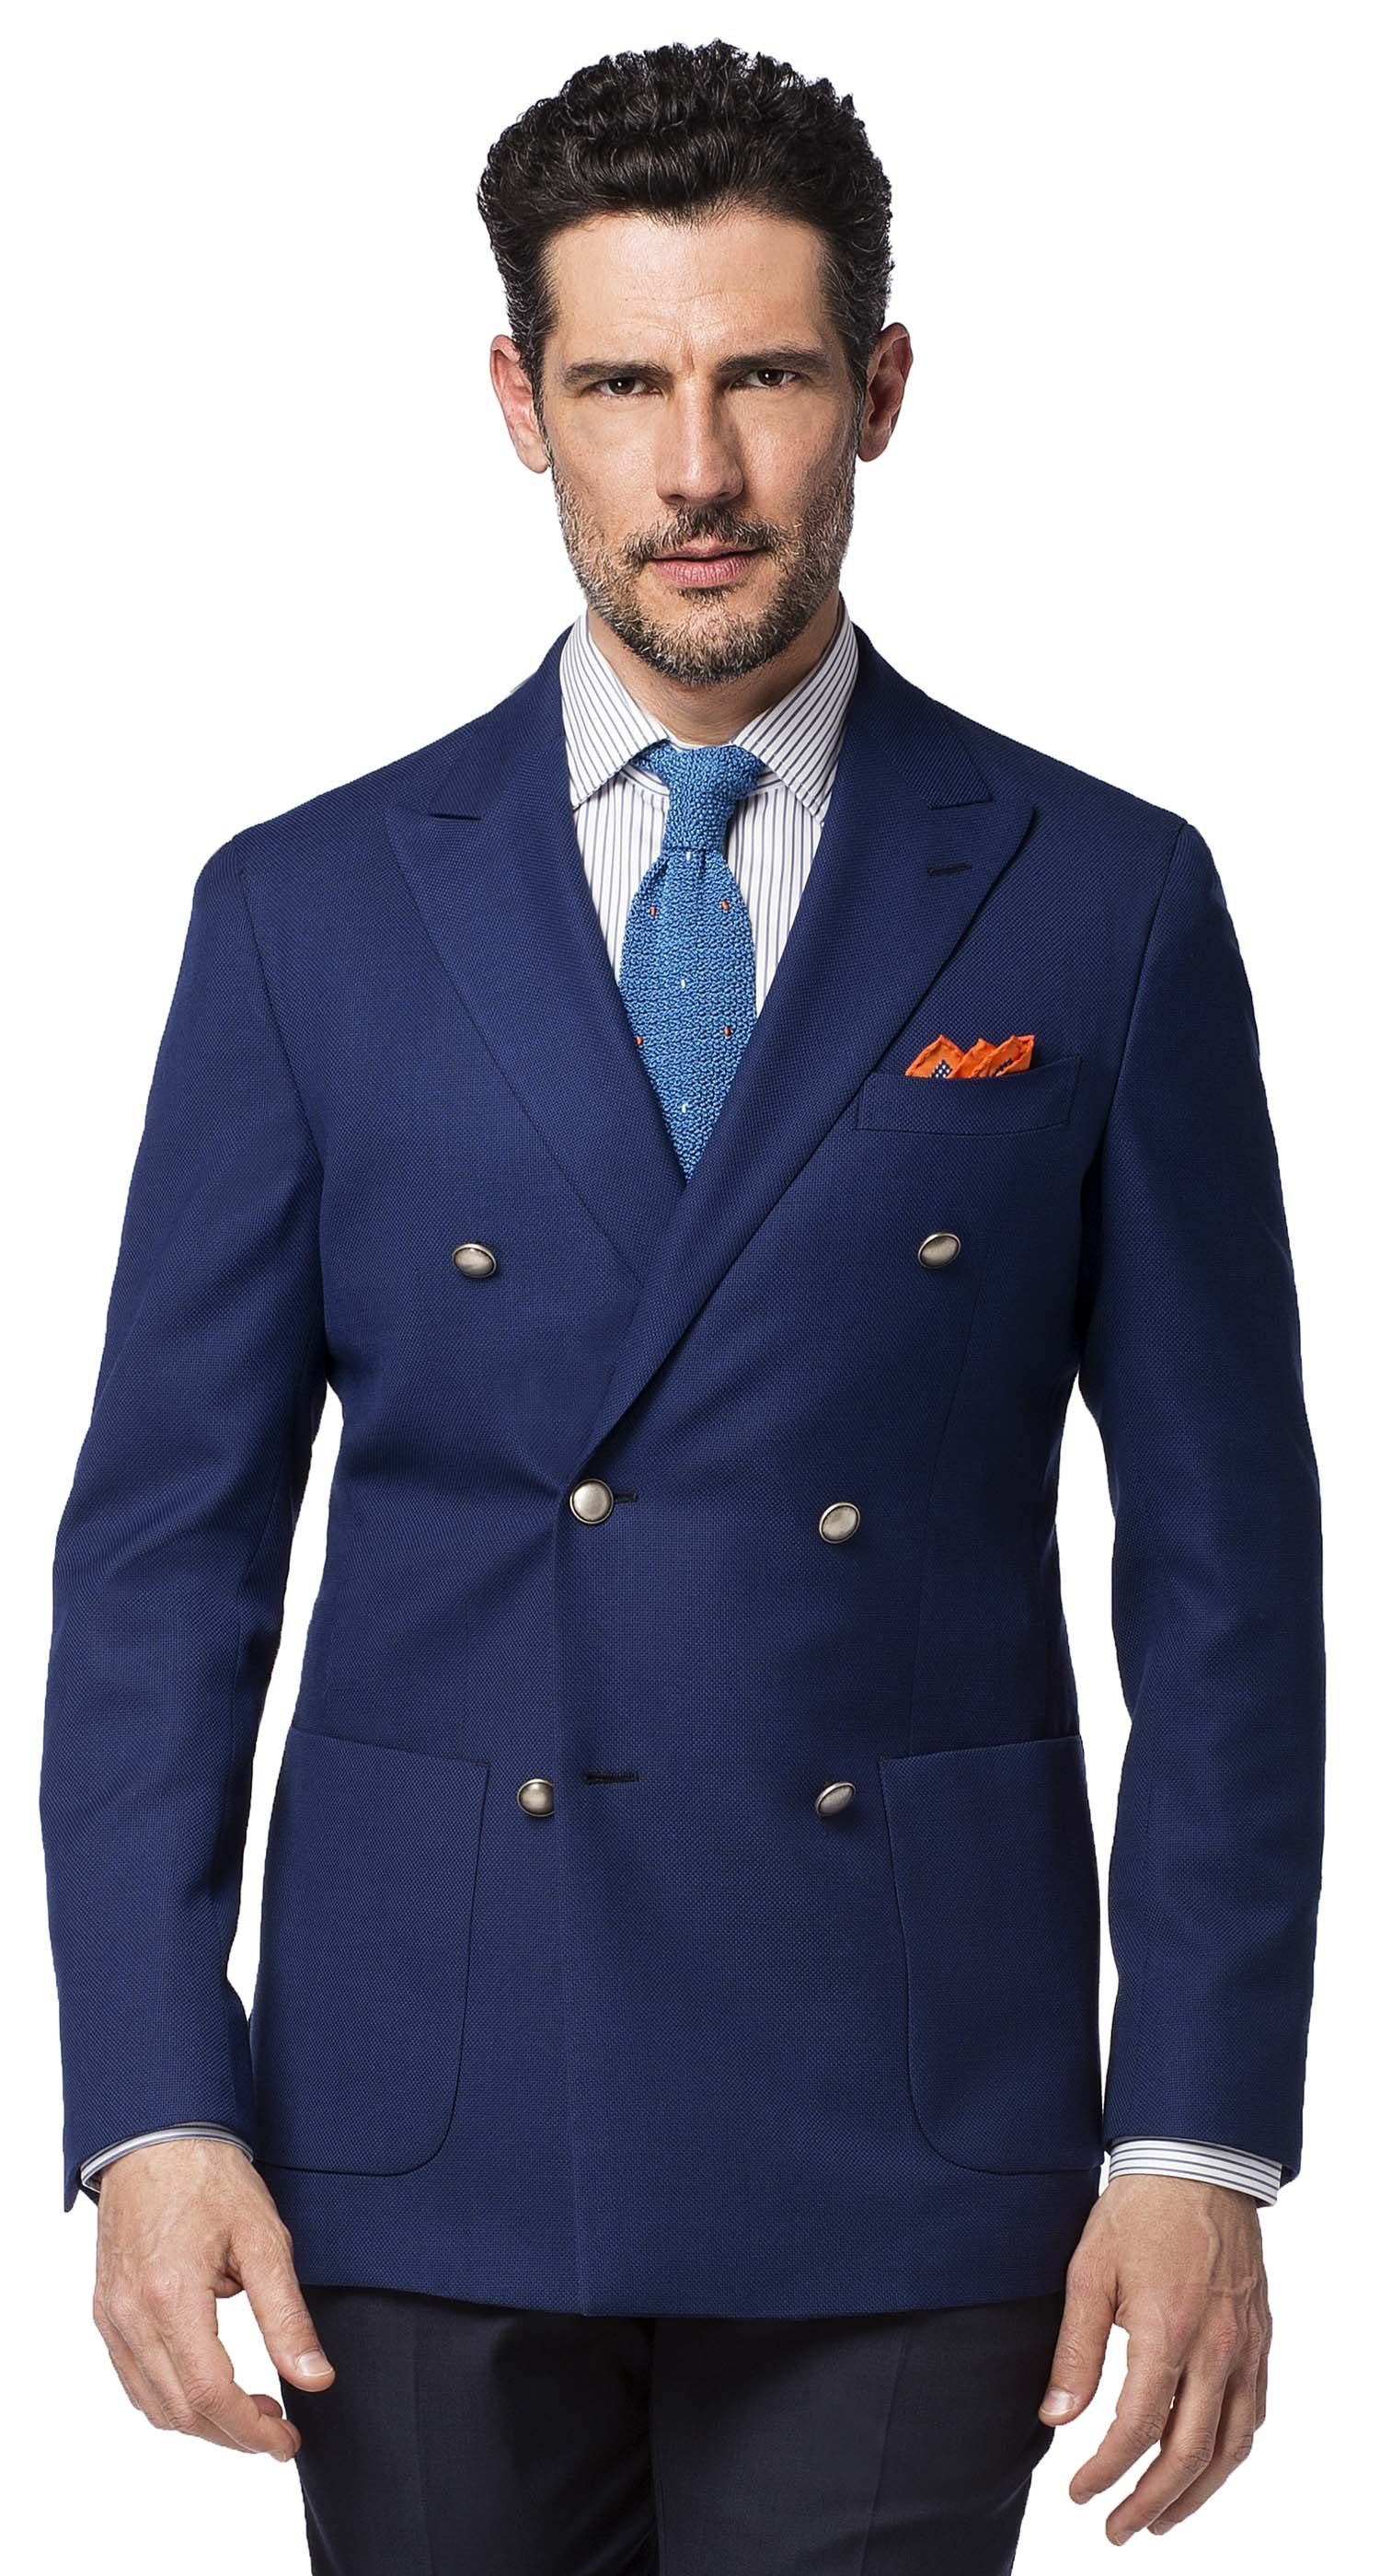 Broken Suit How To Mix Separates And Color Combinations - Interview-suit-color